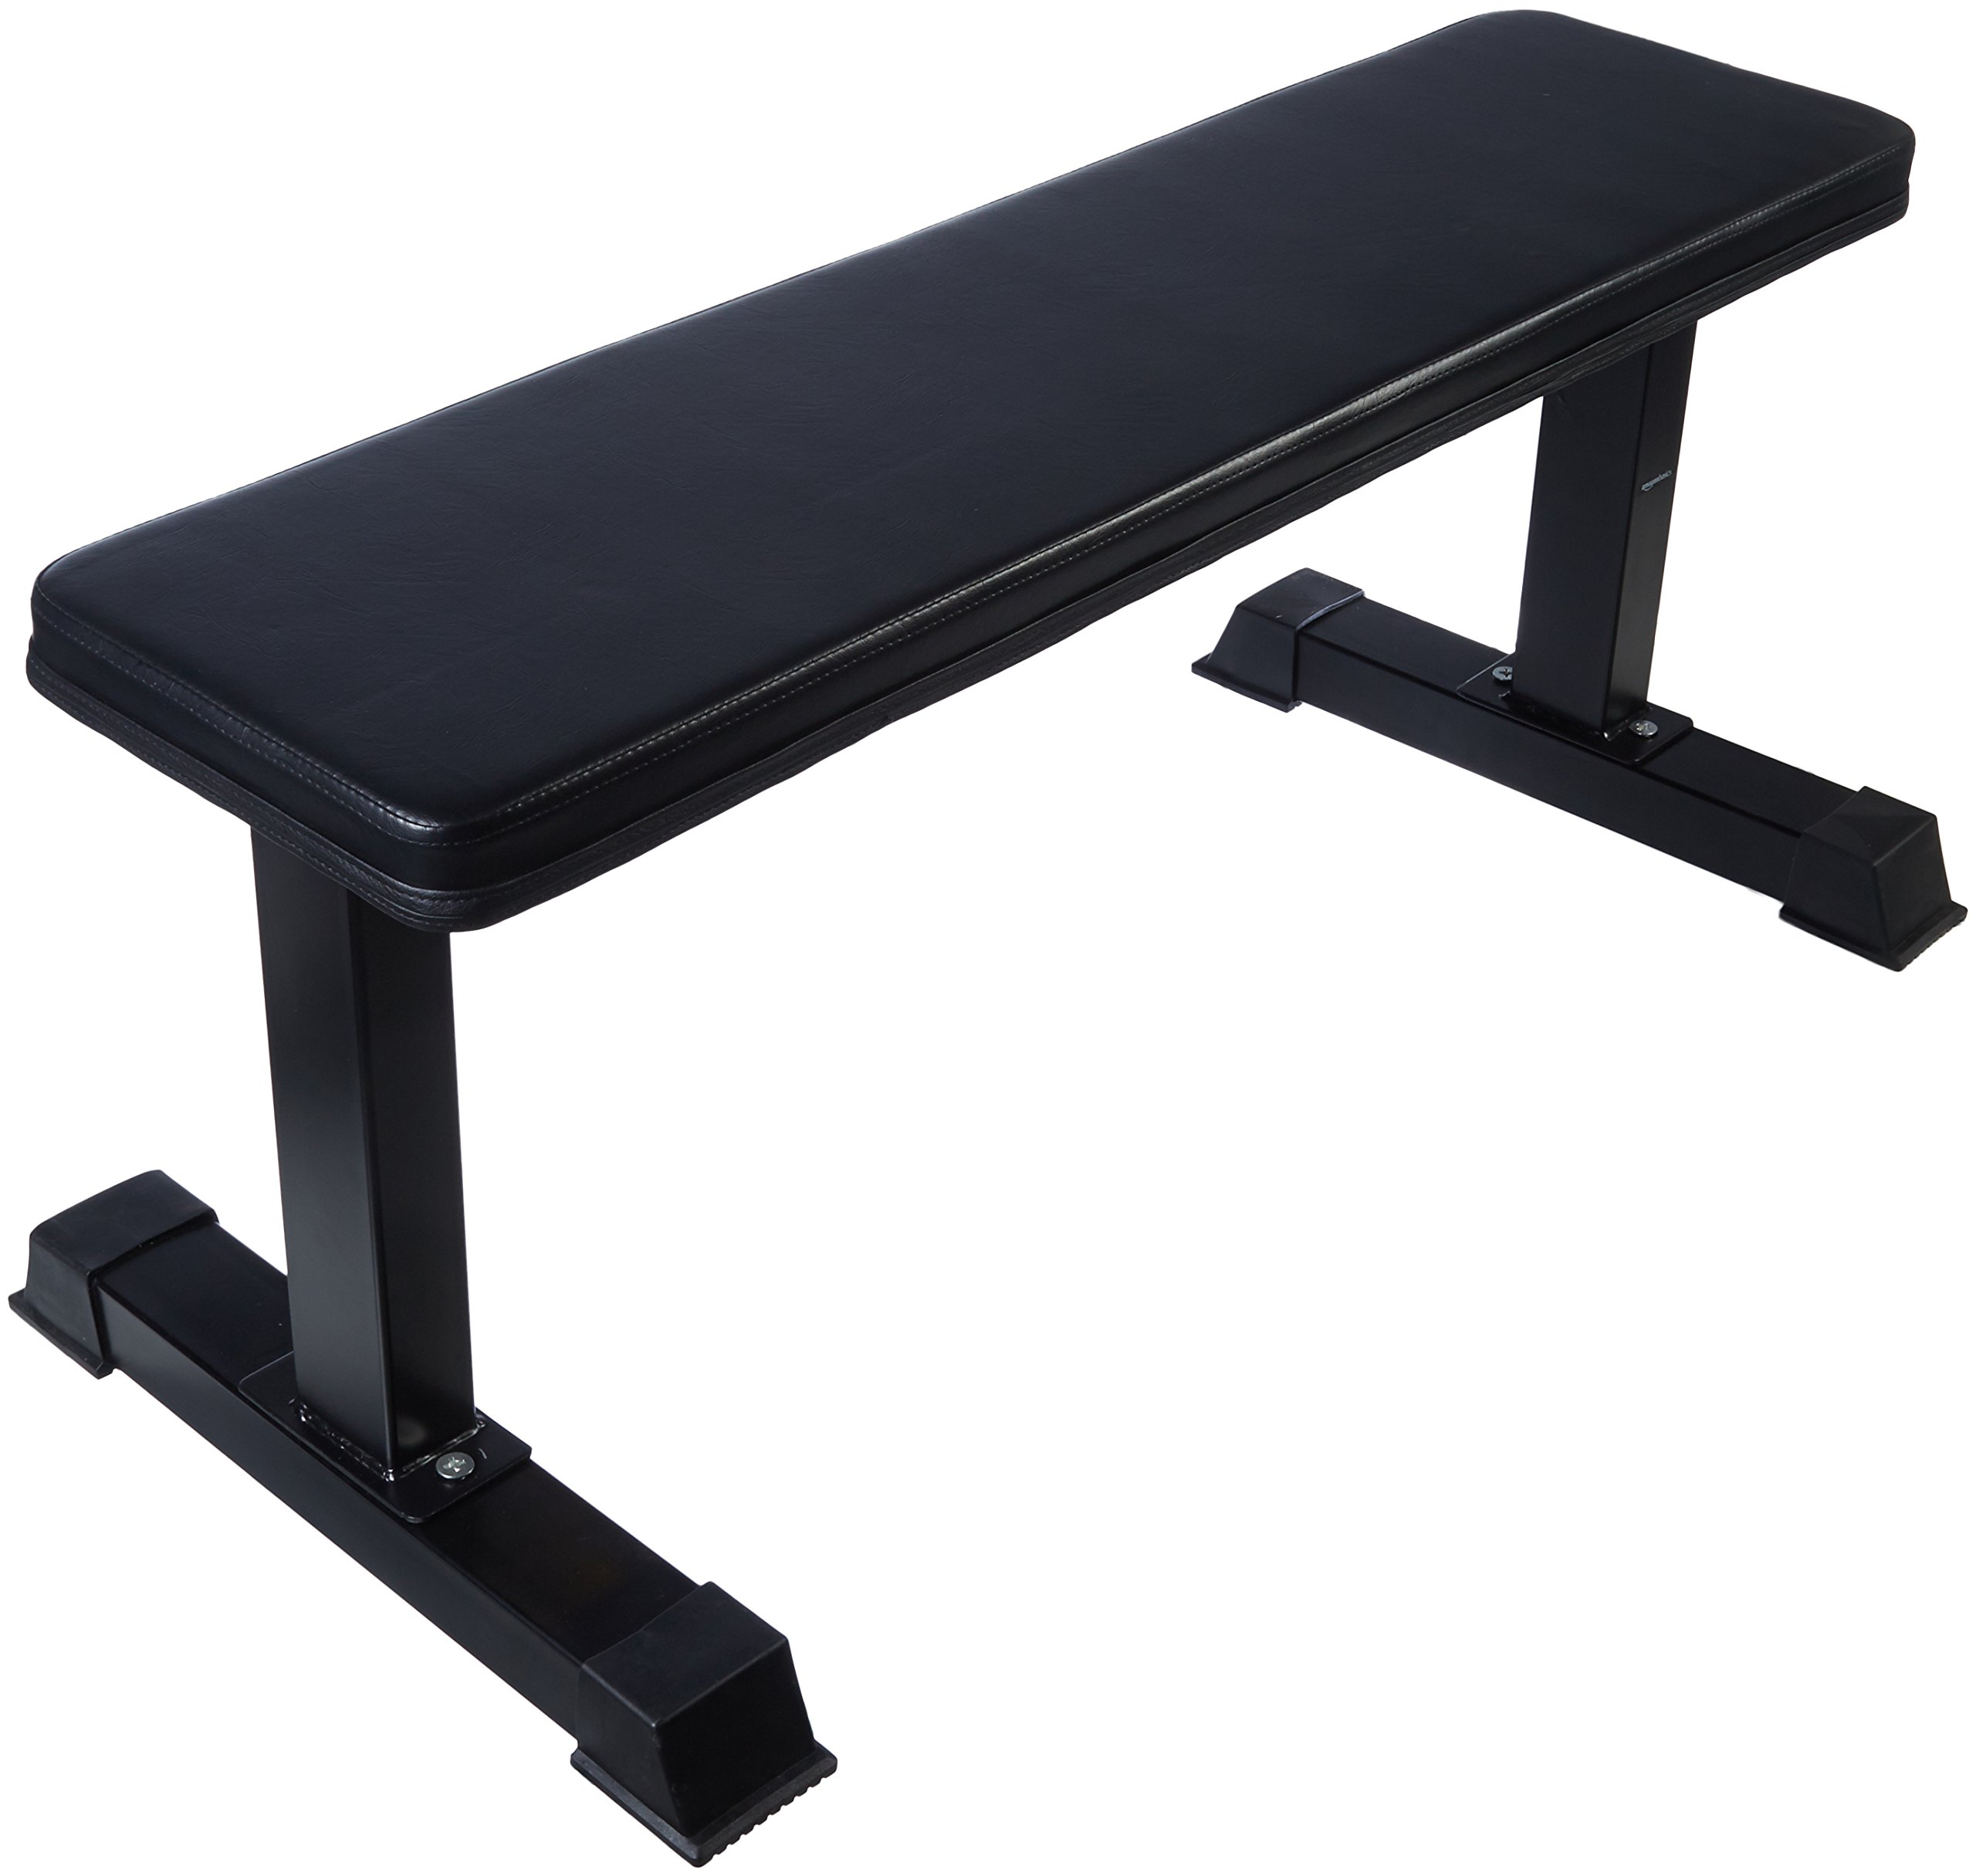 AmazonBasics Flat Weight Workout Exercise Bench 41 x 20 x 11 Inches, Black